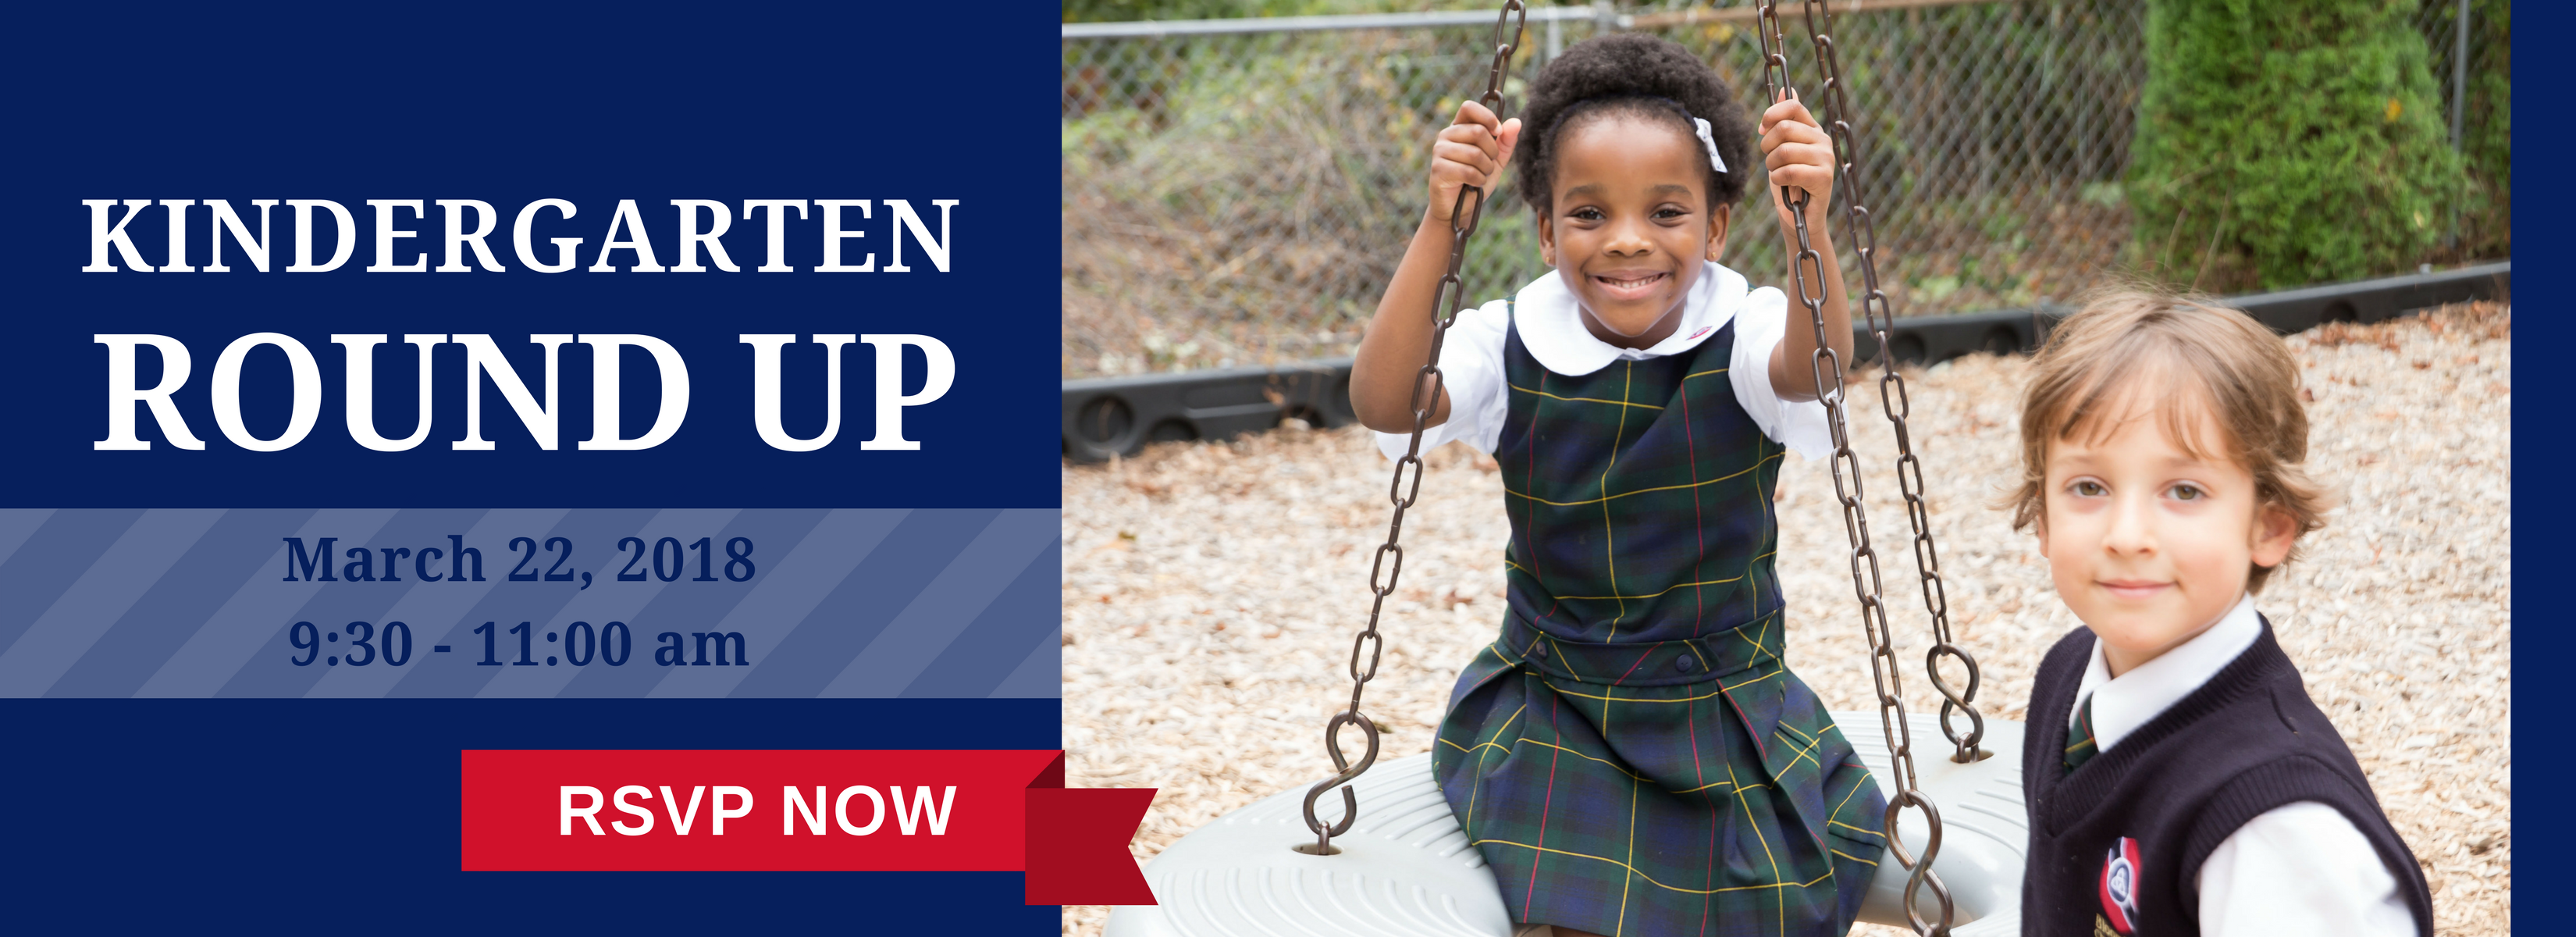 Register for our Kindergarten Round Up